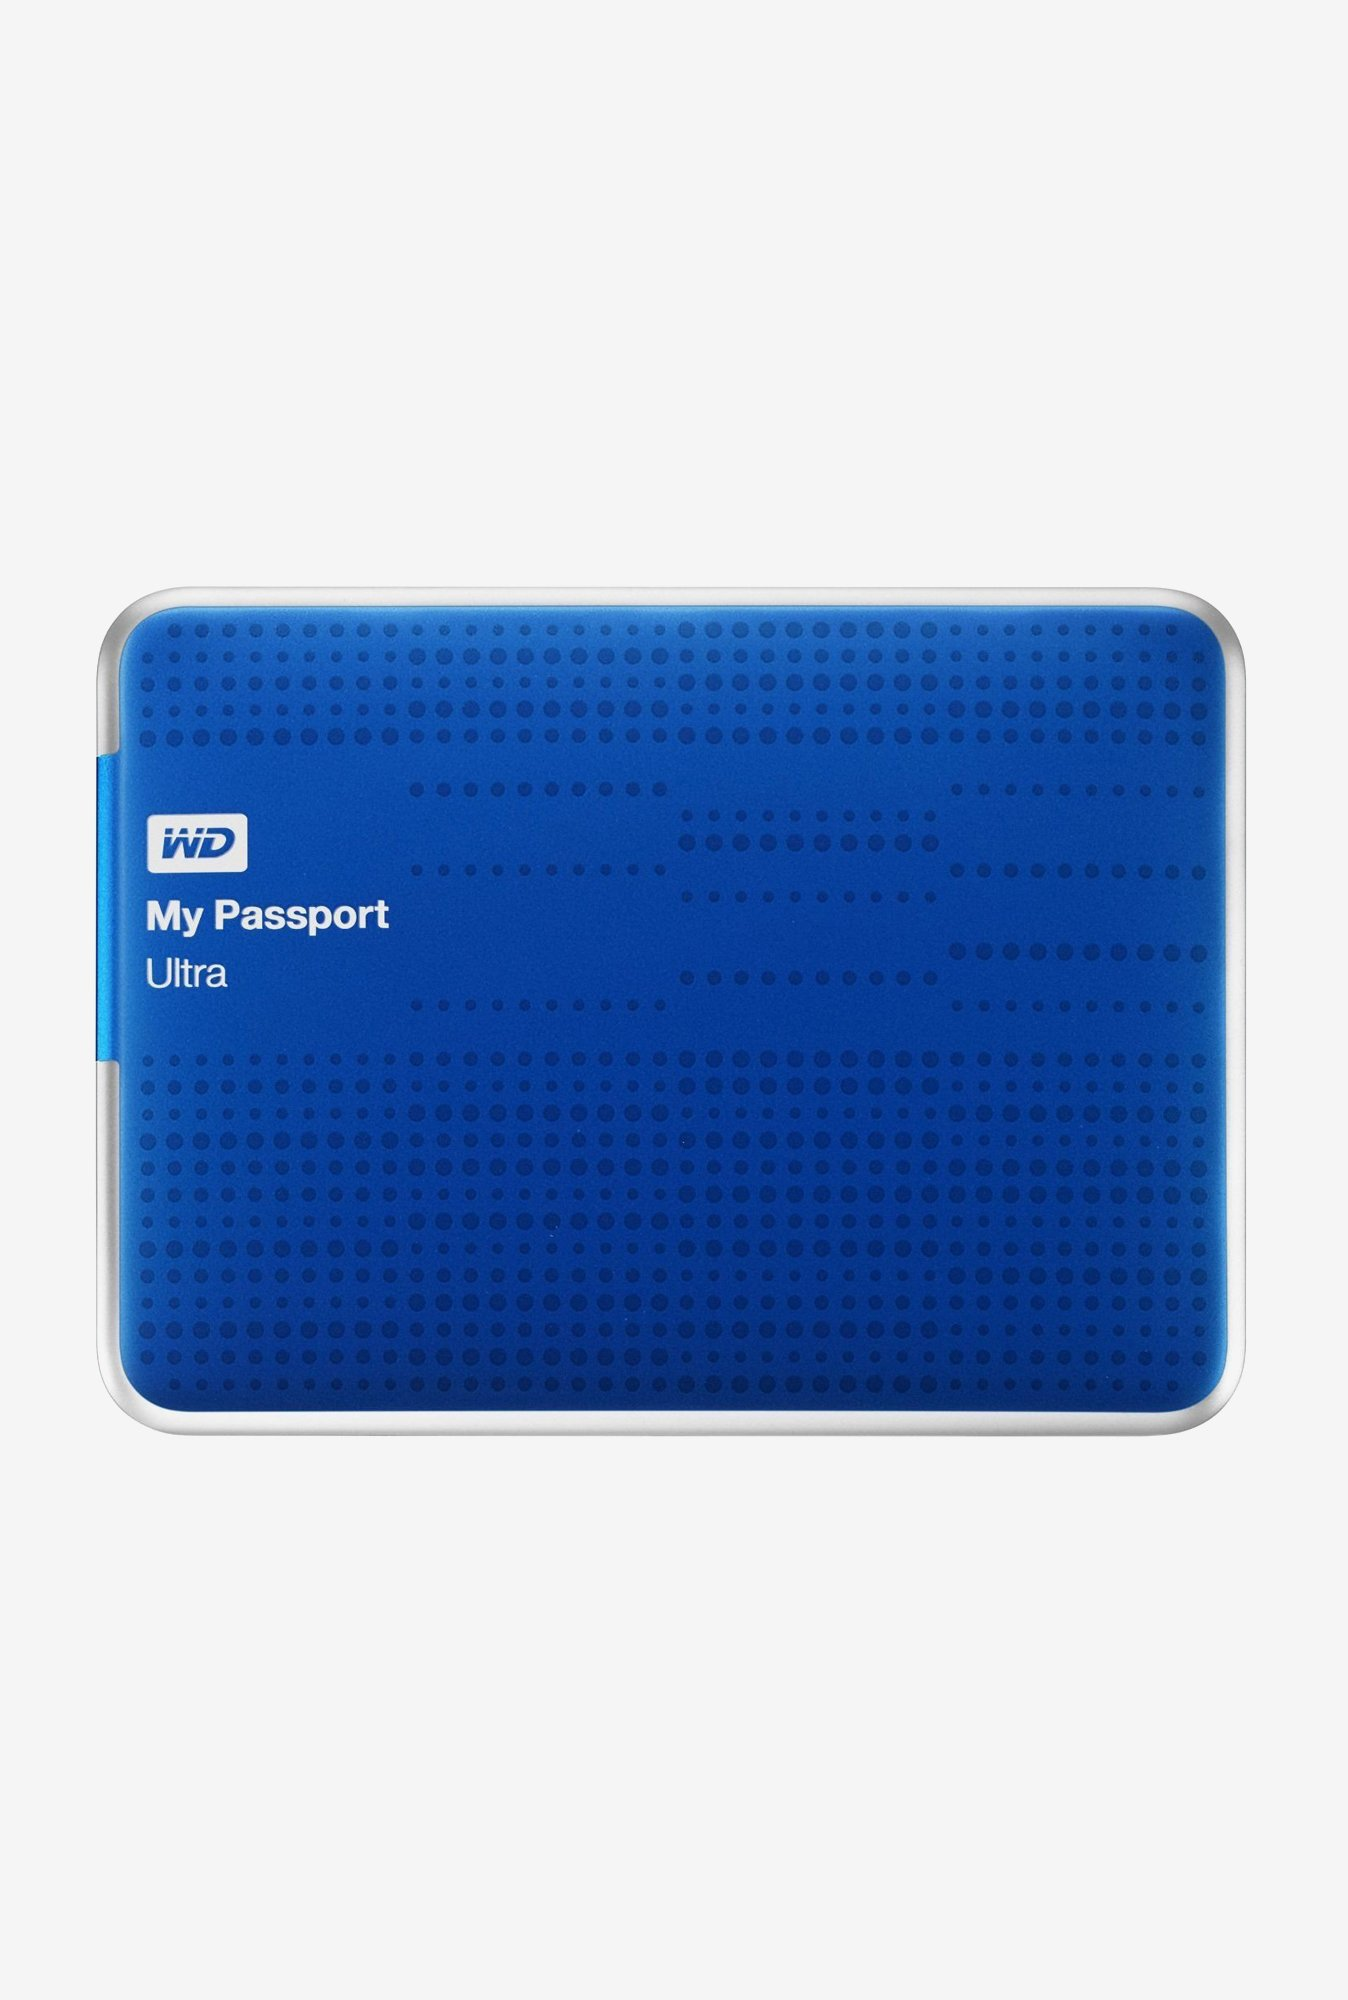 WD My Passport Ultra 2 TB External Hard Disk (Blue)